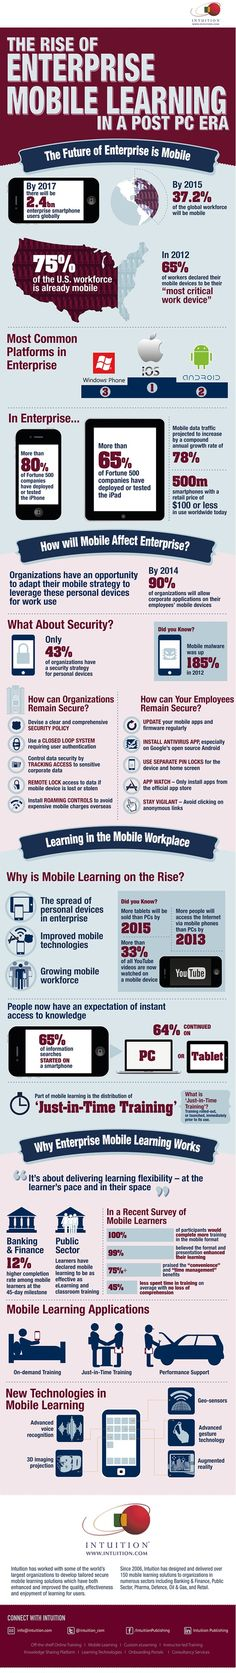 The Rise of Enterprise Mobile Learning - Scroll down to the bottom half of this infographic for what you should be paying attention to and preparing to implement.